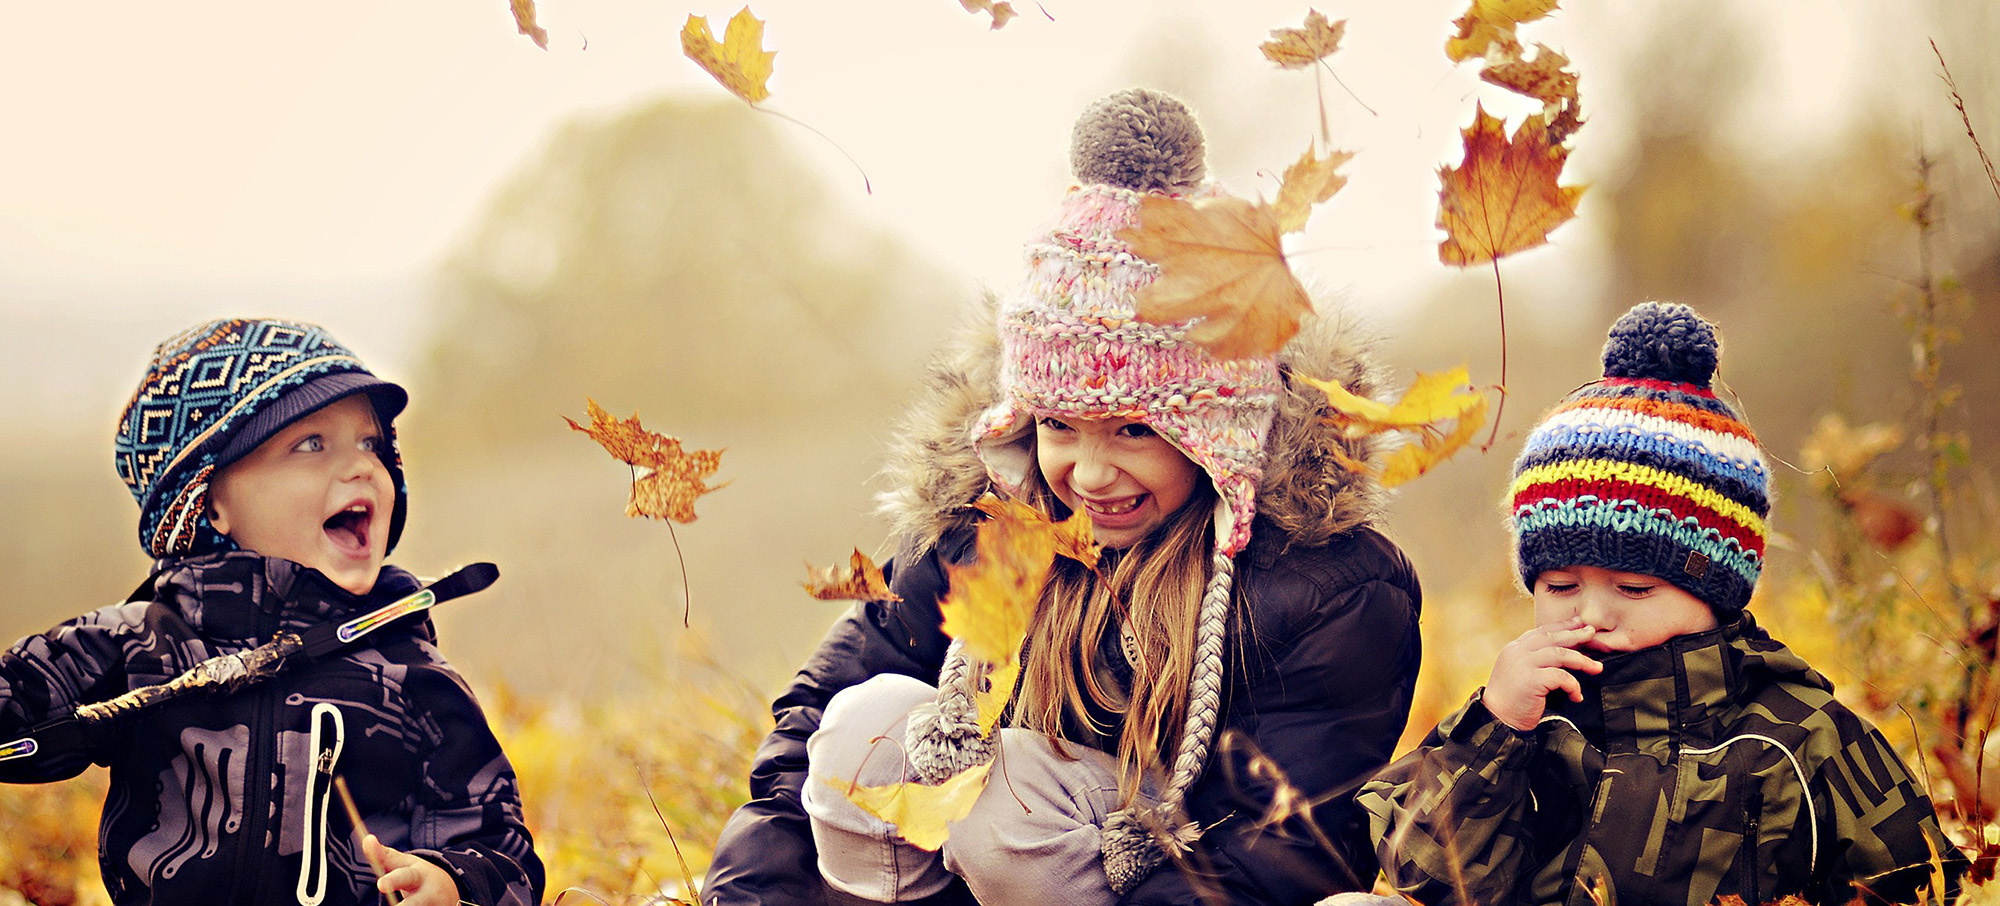 happy-kids-nature-autumn-leaves-photo-wallpaper-2000